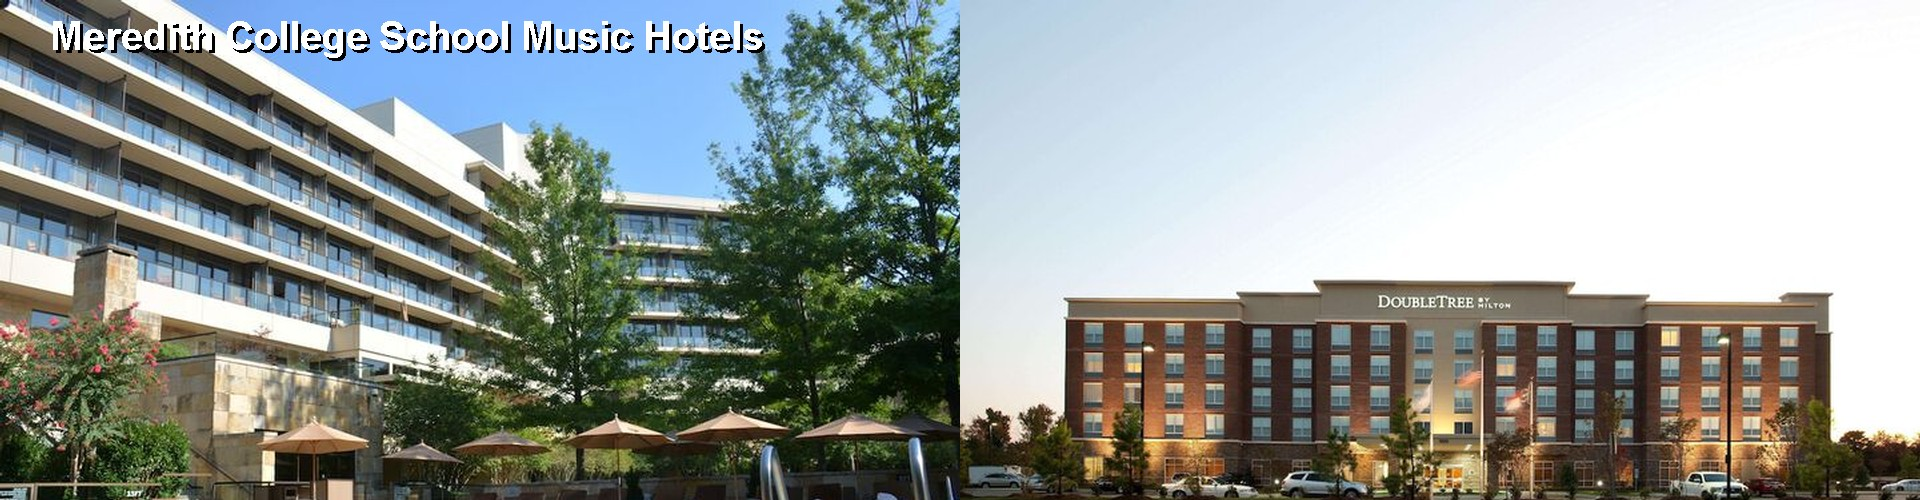 5 Best Hotels near Meredith College School Music